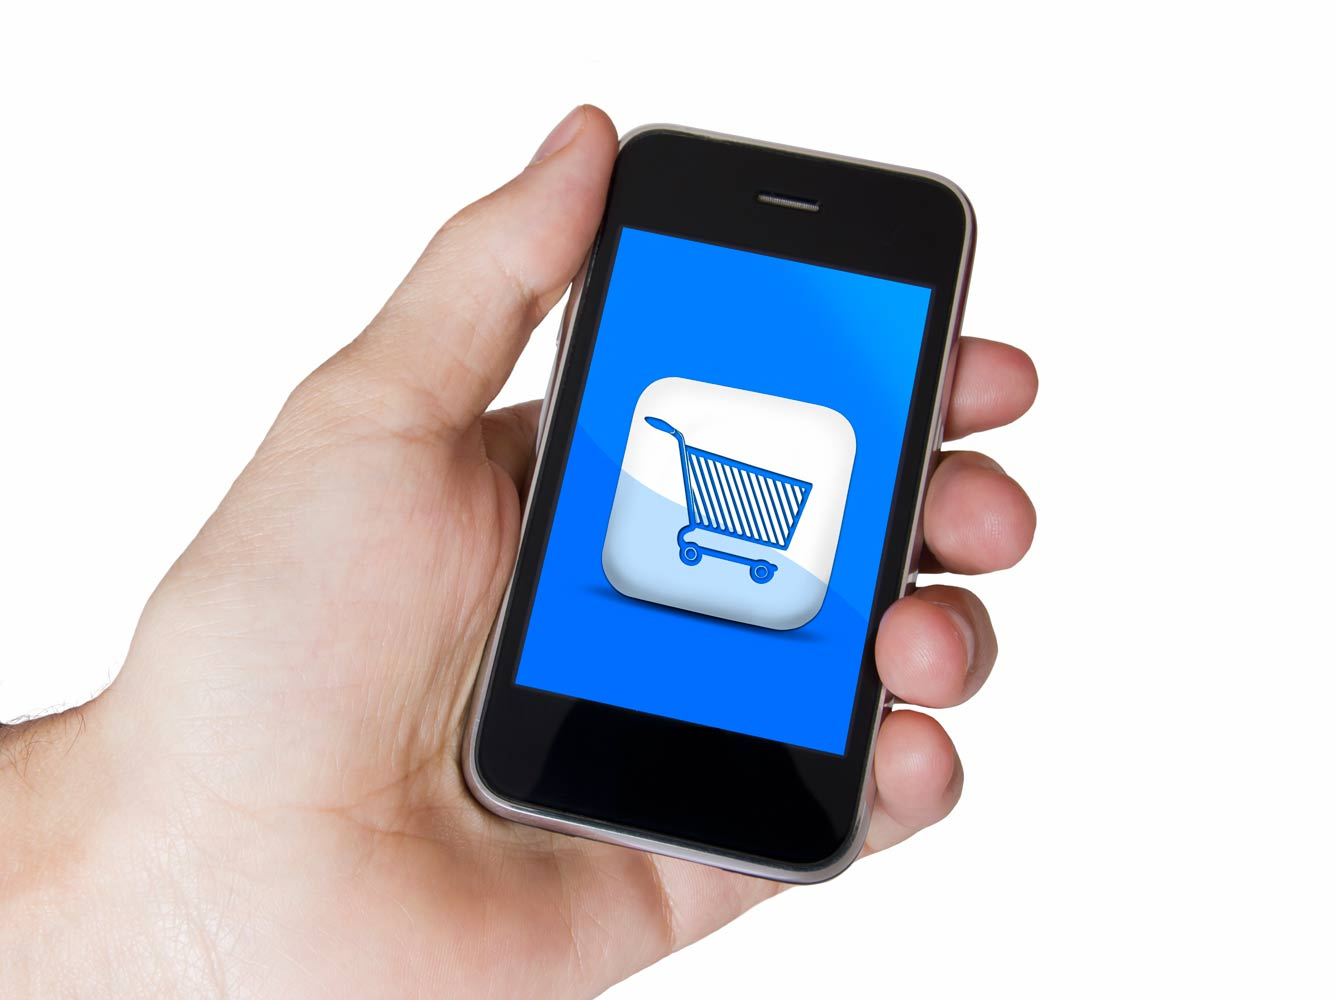 E Commerce Mobili Mobile Ecommerce Sales Increase In 2012